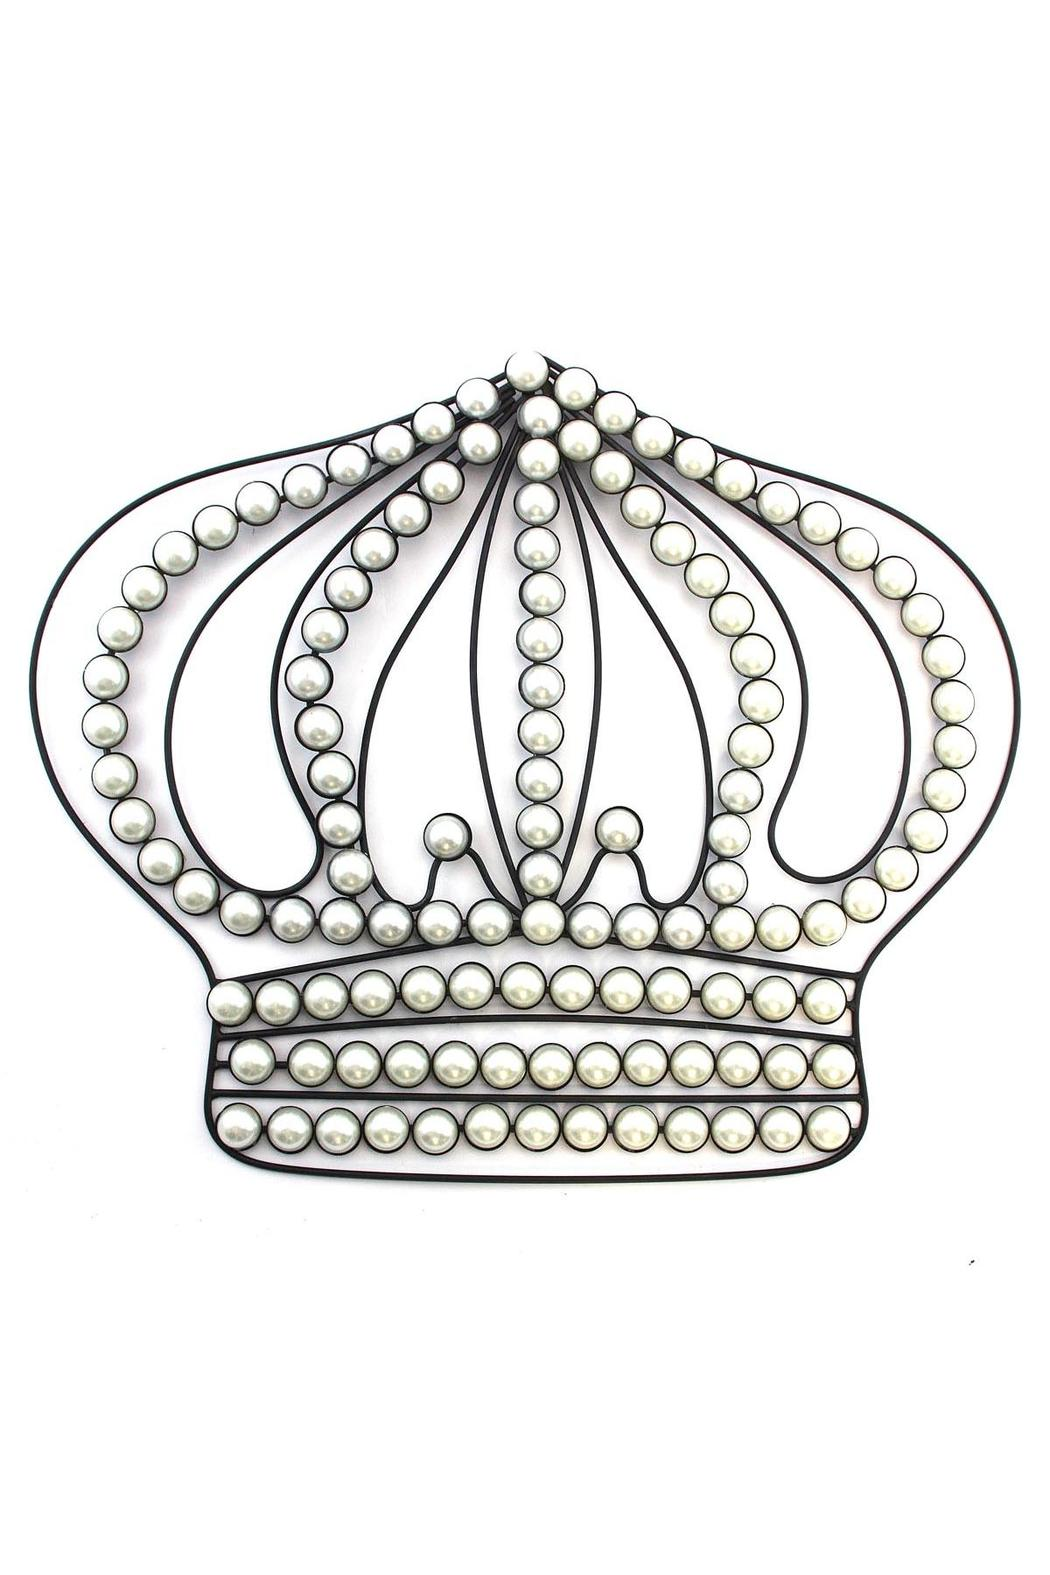 Black Crown Wall Decor : Giftcraft inc crown wall decor from alabama by jubilee